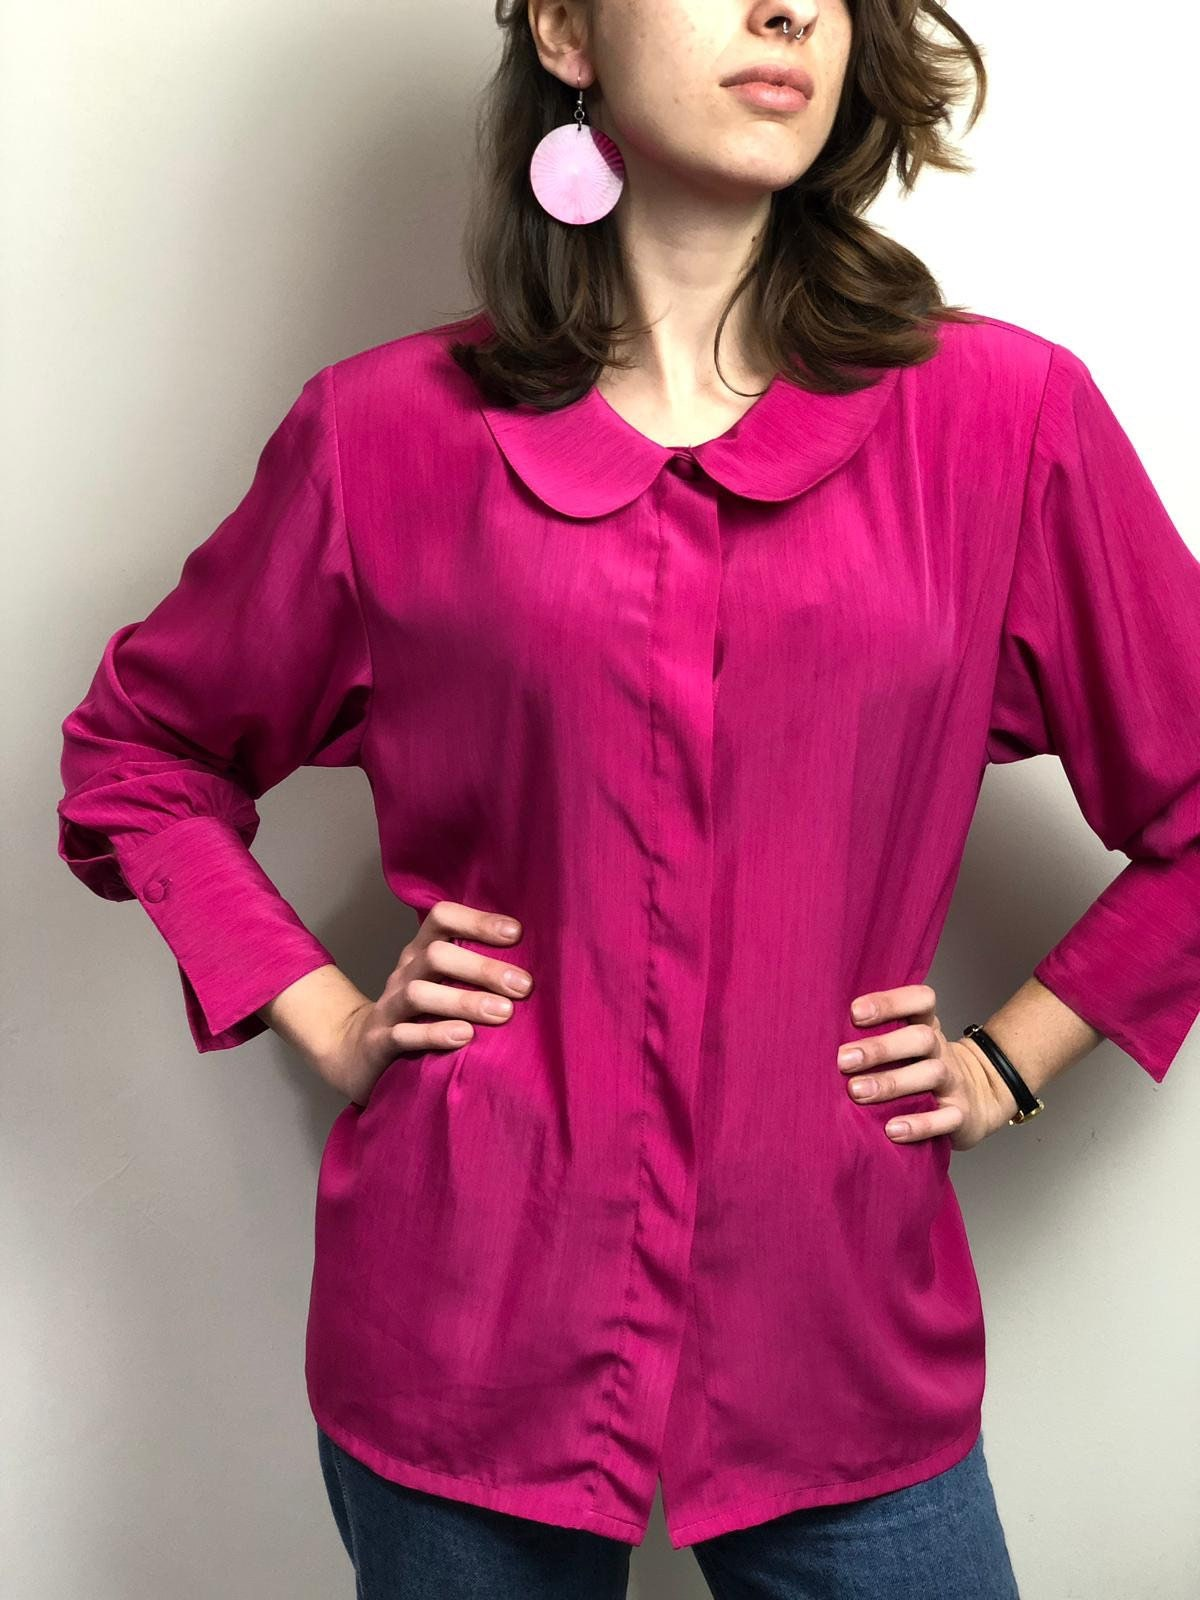 229bffba7 Vintage Hot Pink Shirt with Shoulder Pads / Long Sleeve | Etsy